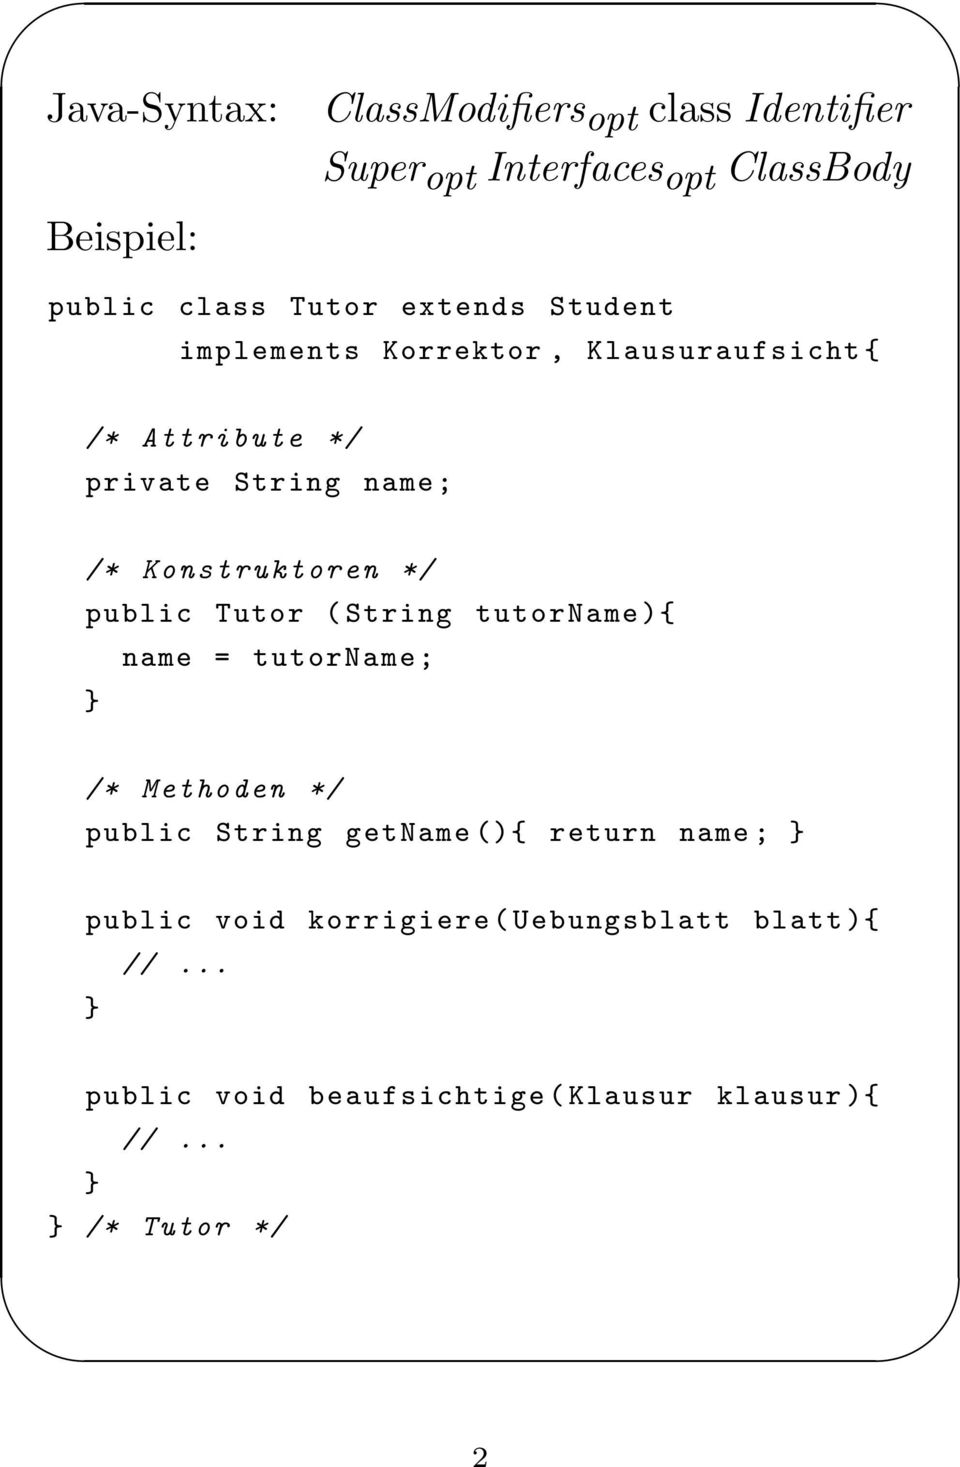 public Tutor ( String tutorname ){ name = tutorname; /* Methoden */ public String getname (){ return name ;